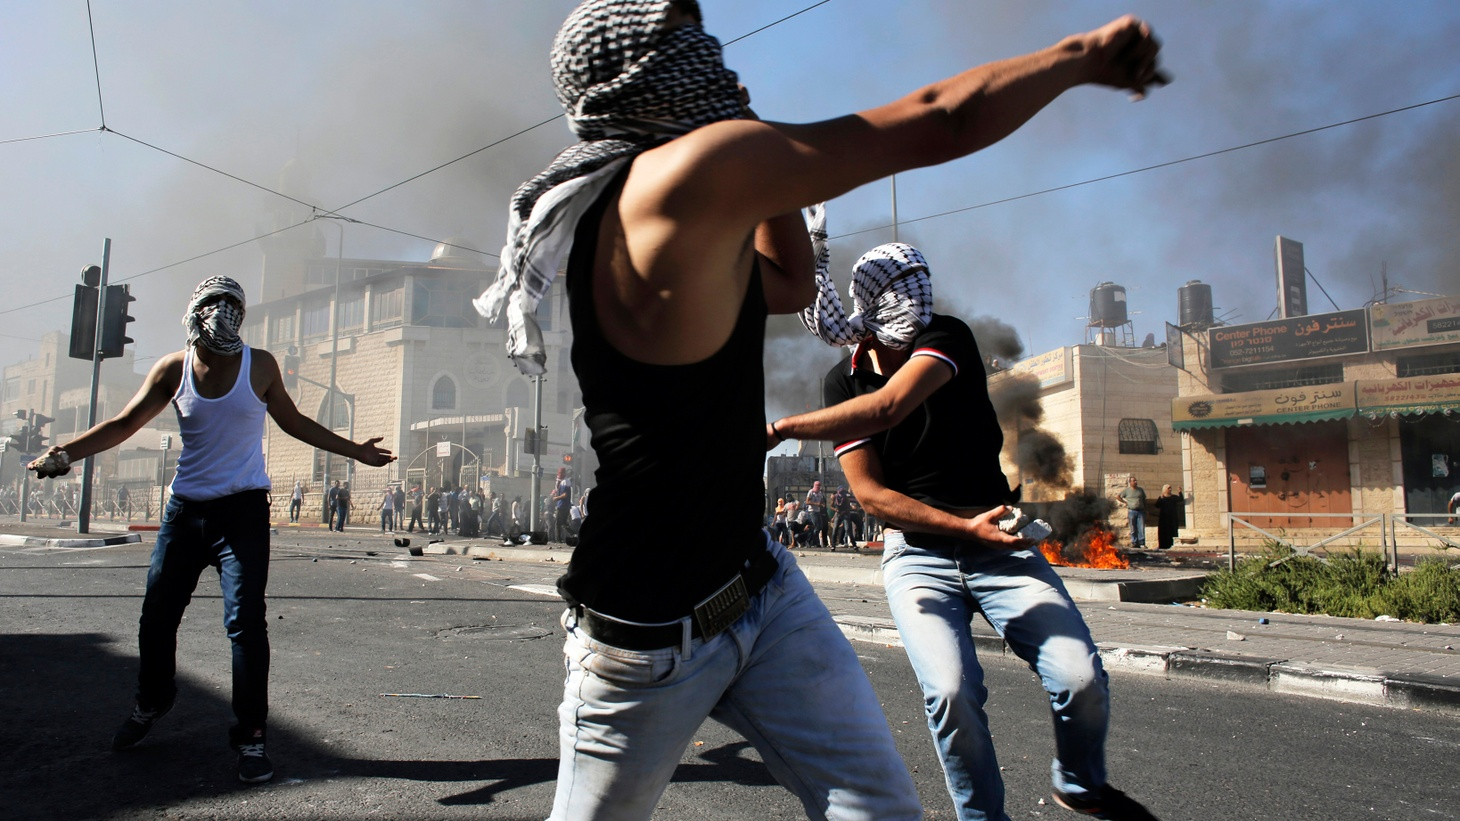 Tensions reached a new high today in the conflict between Israelis and Palestinians. Does the abandonment of a peace process mean more violence ahead? Can the US do anything to relieve the tensions?